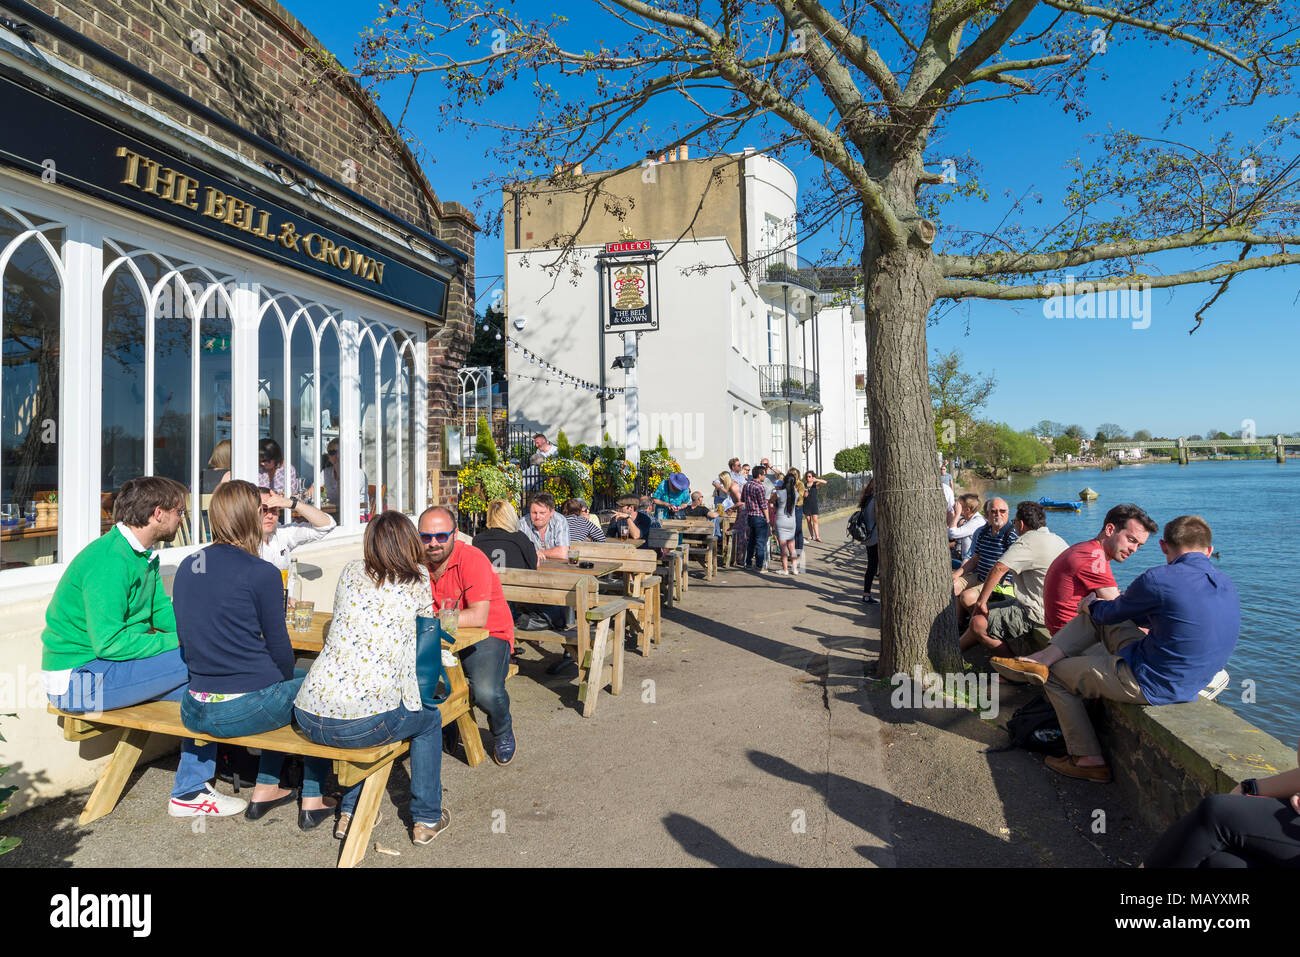 The Bell and Crown Thames riverside pub, Strand-on-the-green, Chiswick, London, UK - Stock Image